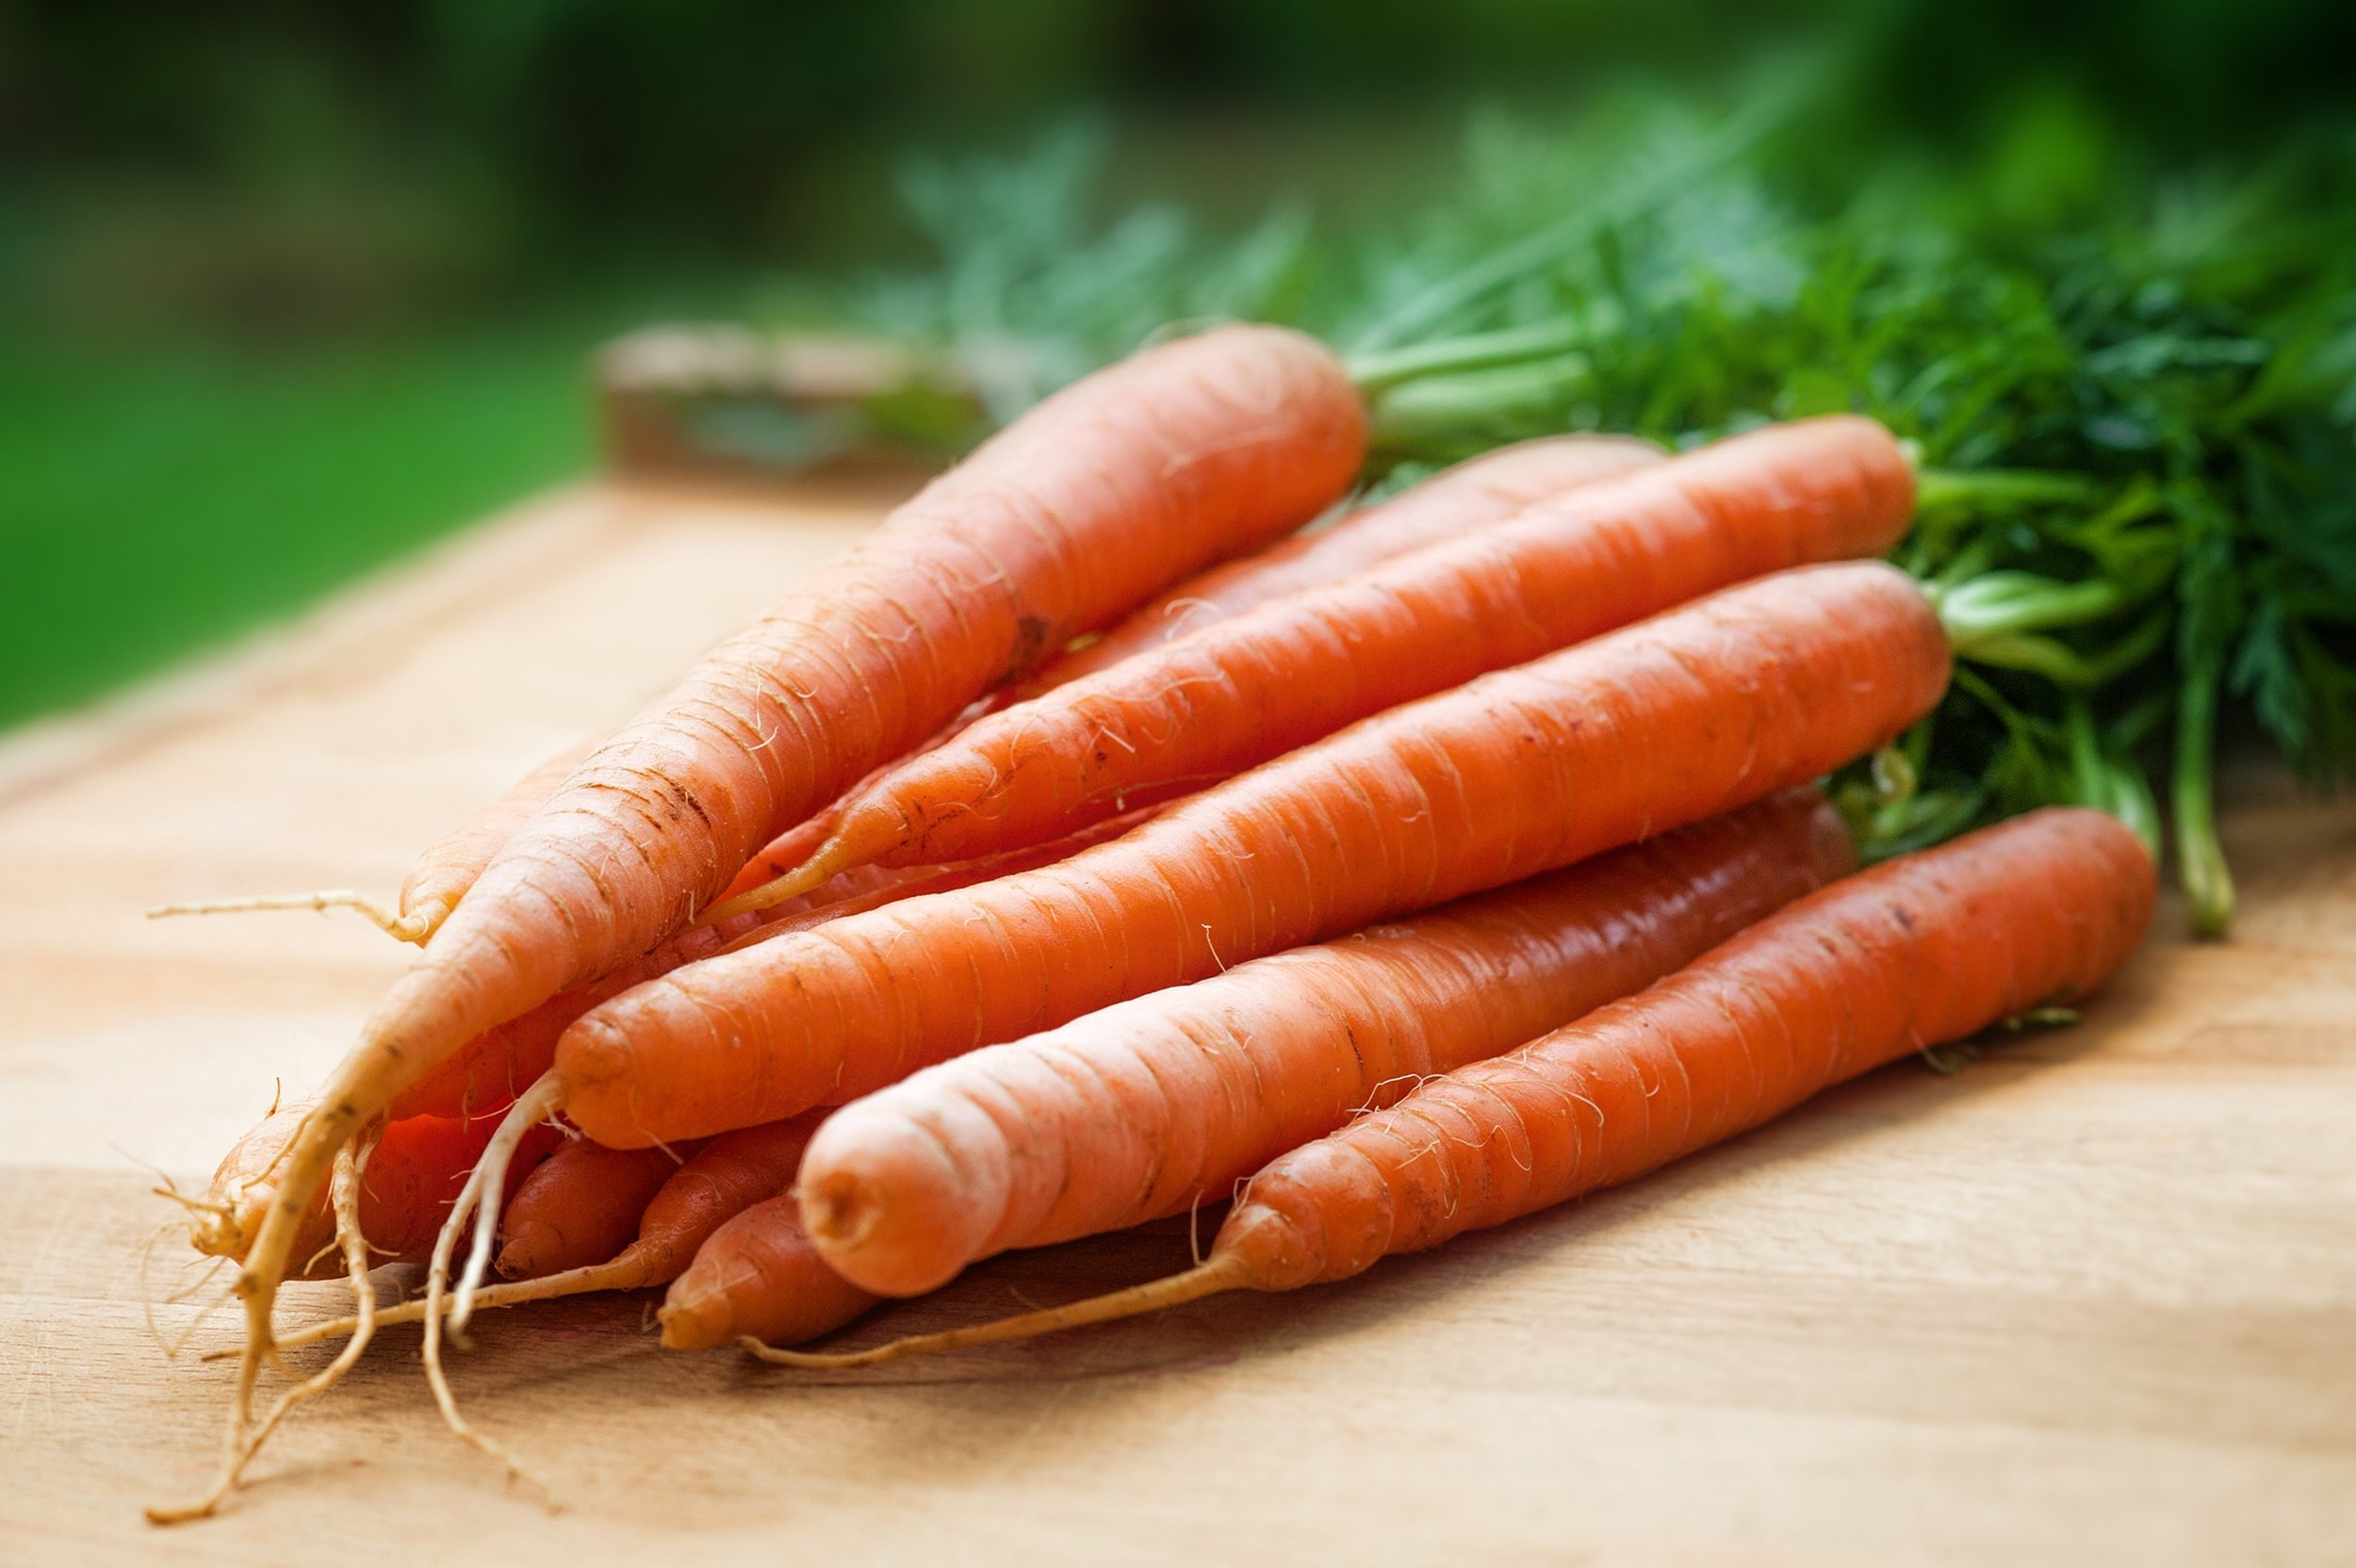 agriculture-carrots-close-up-143133.jpg